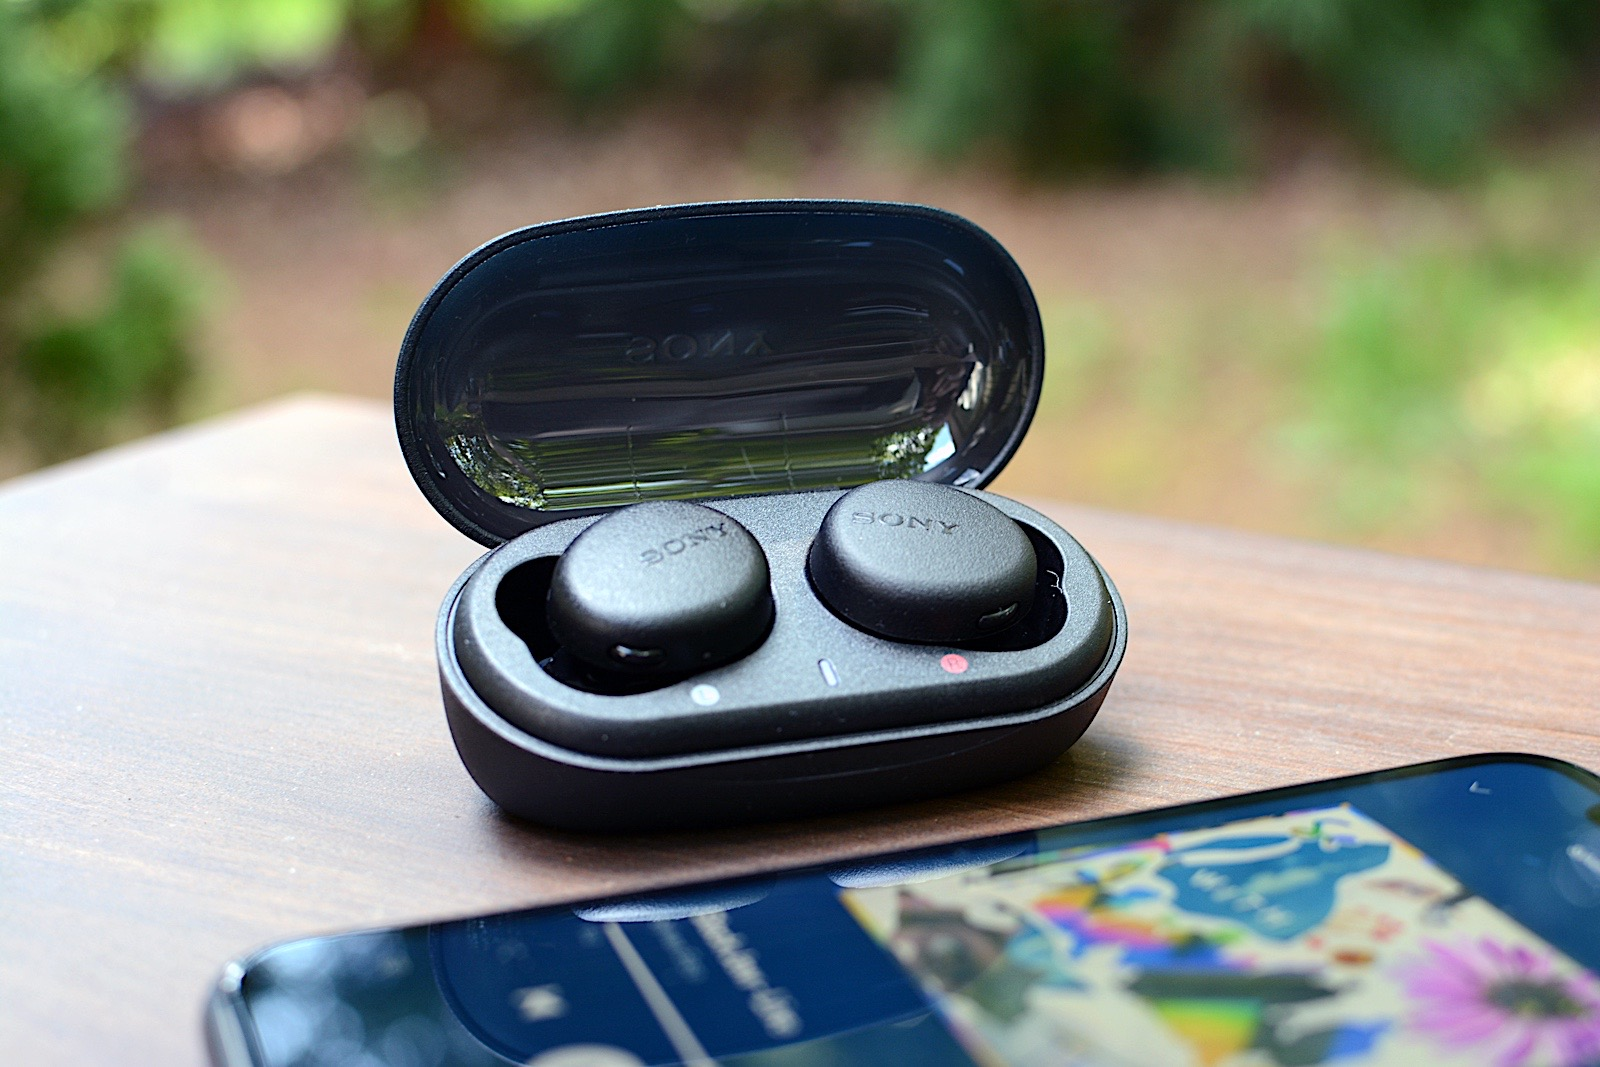 The company's $130 true wireless model offers a lot for a little, but lacks key features.